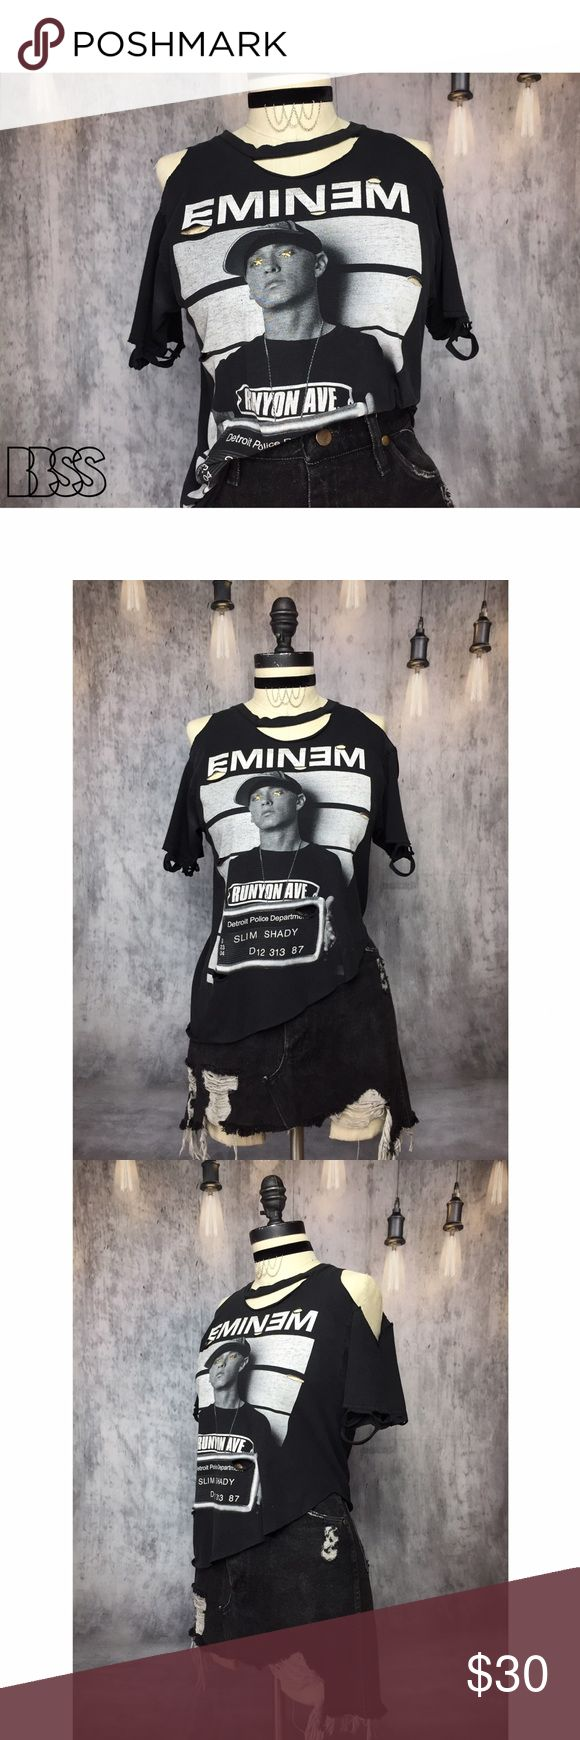 SLIM SHADY OG EMINEM DISTRESSED COLD SHOULDER TEE! SLIM SHADY OG EMINEM DISTRESSED COLD SHOULDER TEE! Awesome STARRY EYED graphic tee with open shoulders and distressing details!! Top is cut asymmetrical! Great style to knot up on on side or tuck into high waisted bottoms! Fabric is super thin worn in faded vintage black! RUNYON AVE - D12 313 87 - DETROIT POLICE DEPARTMENT. MEASUREMENTS - BUST: 16' / LENGTH: 22.5' (longest) 15' (shortest) #festival #concert #band #grunge Vintage Tops Tees…